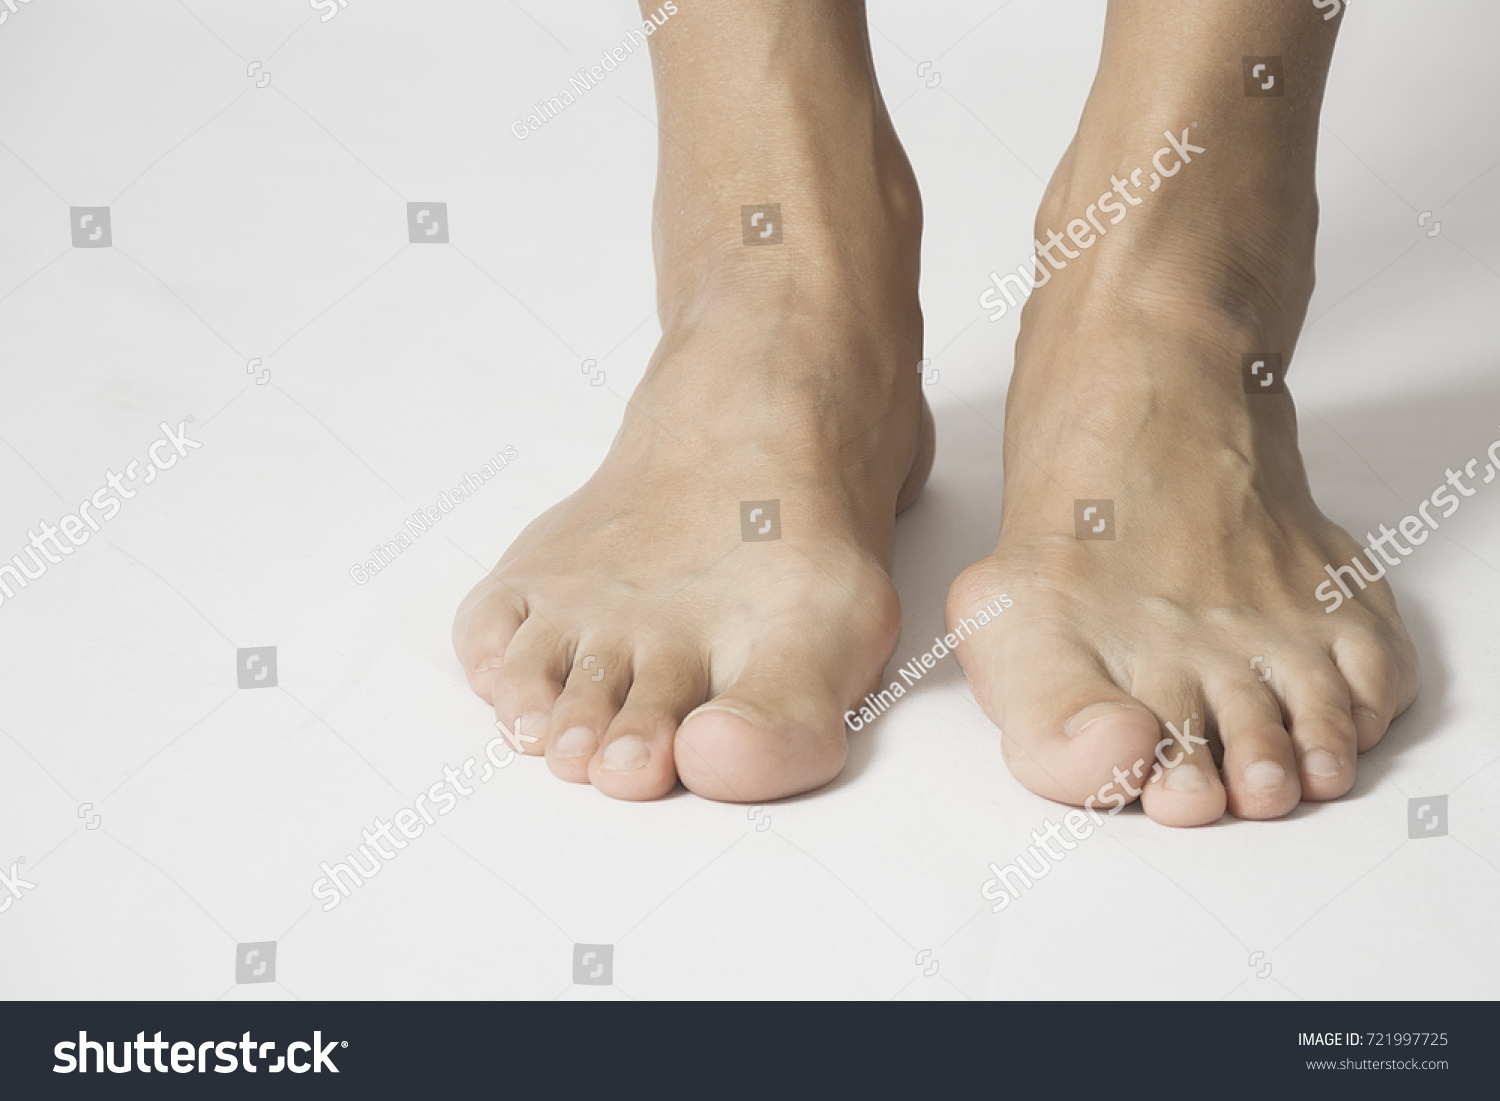 Hallux Valgus Bunion Foot On White Stock Photo (Royalty Free ...